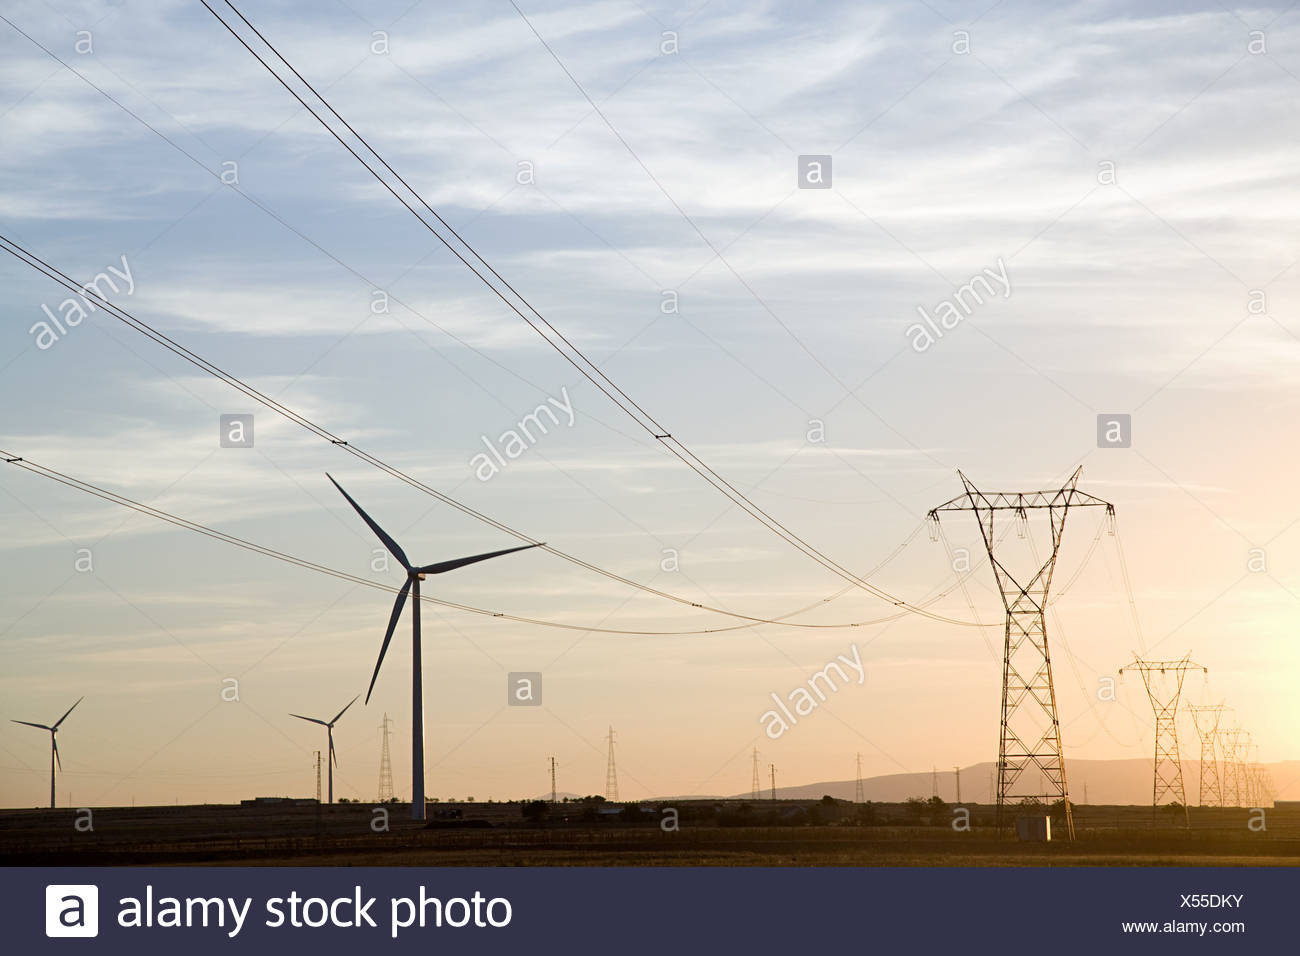 Wind turbines and pylons - Stock Image